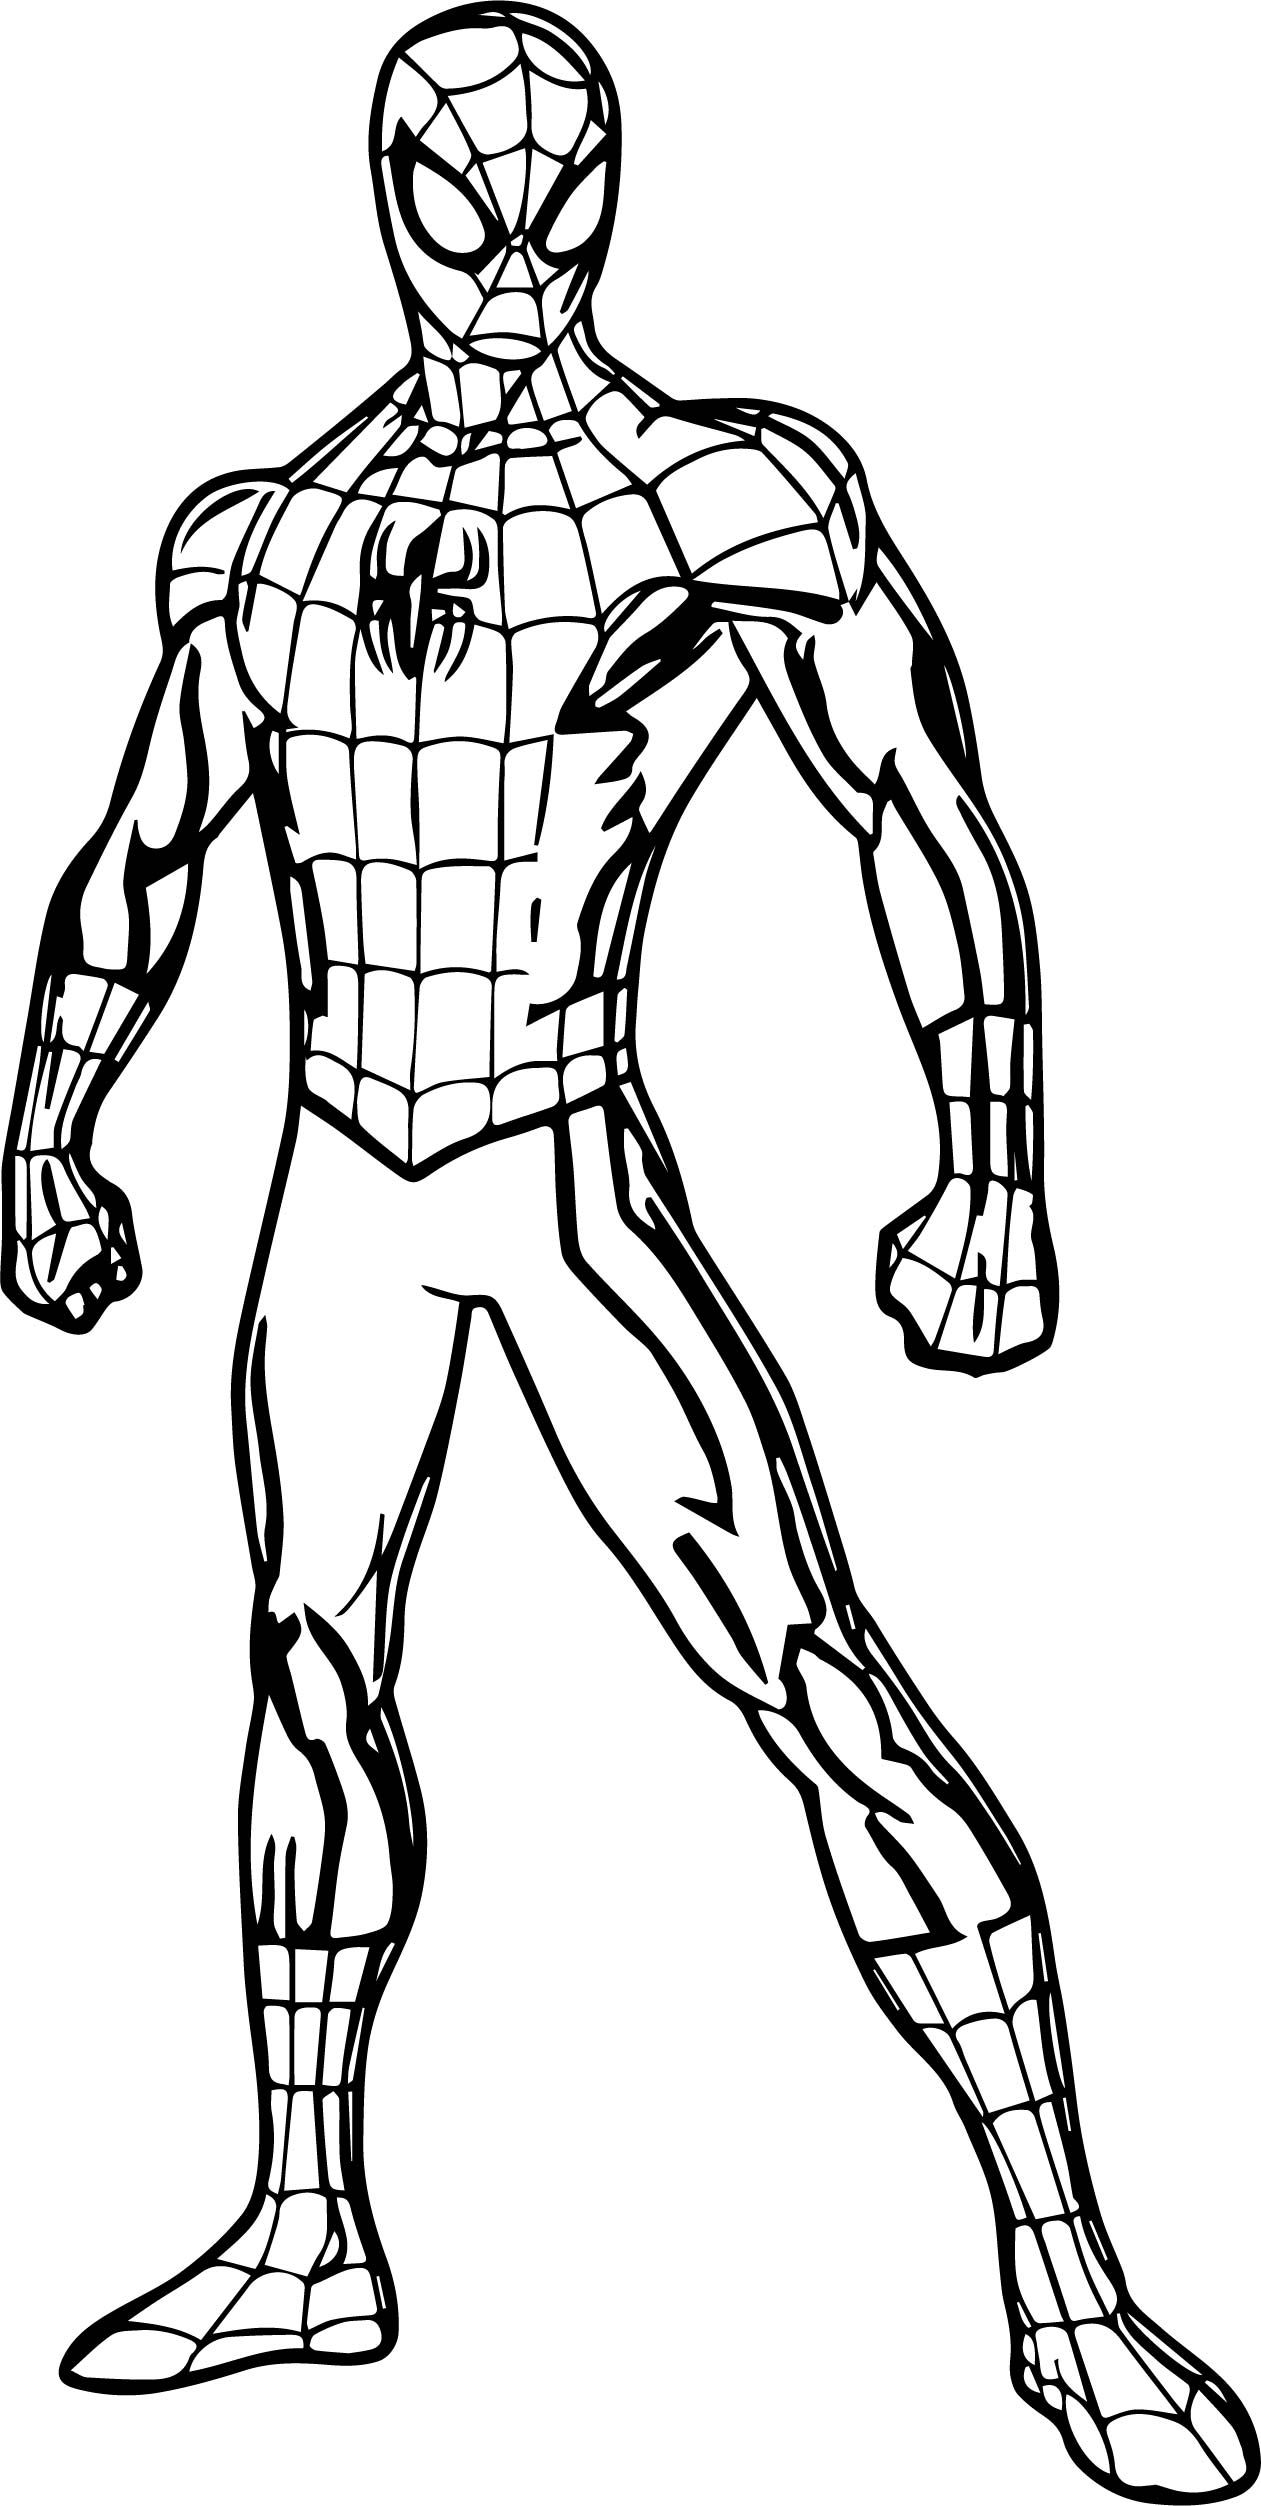 Cool Spider Man Pose Coloring Page Superhero Coloring Superhero